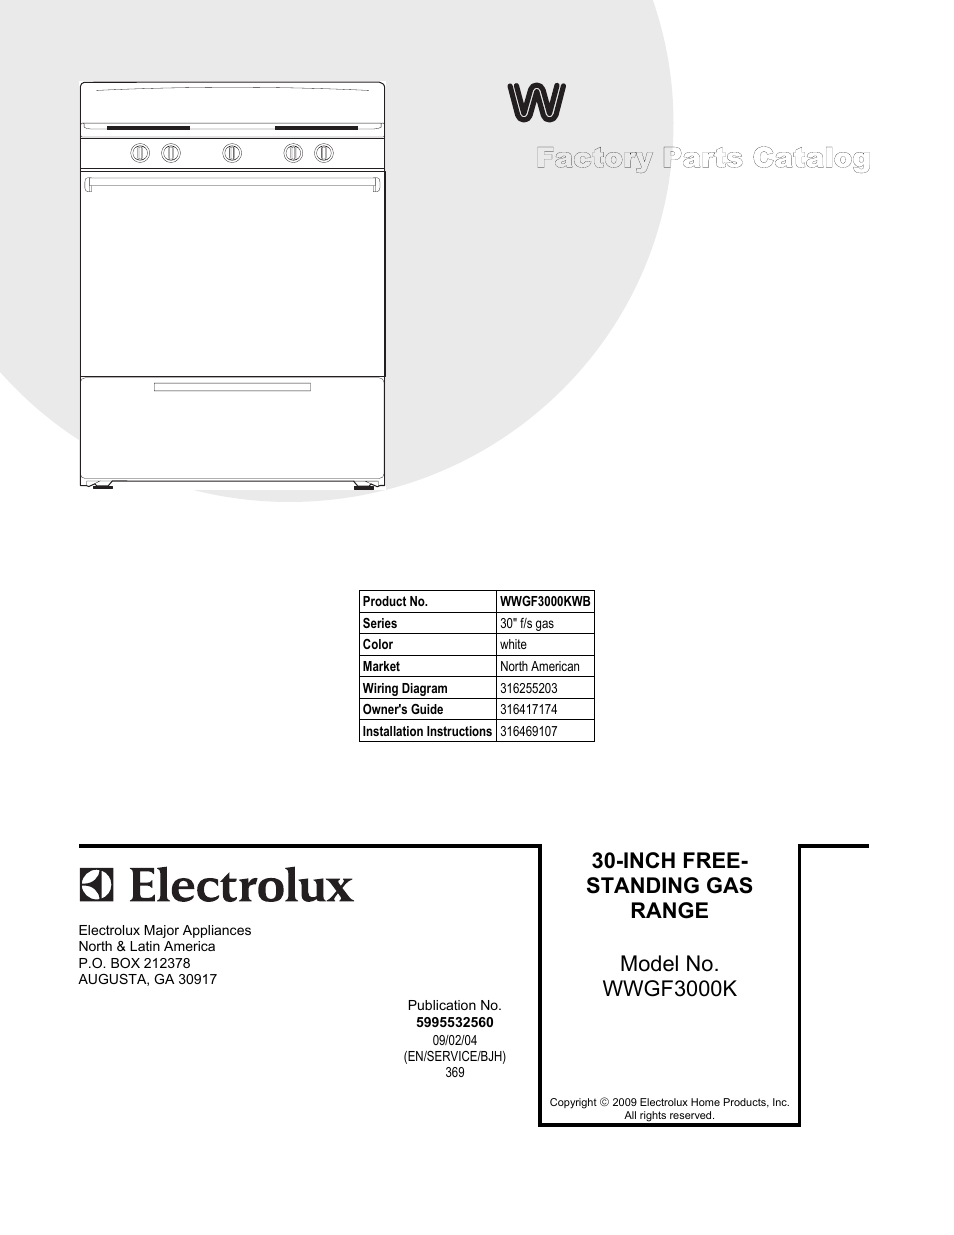 Wiring Diagram Westinghouse Fridge : Electrolux white westinghouse wwgf kwb user manual